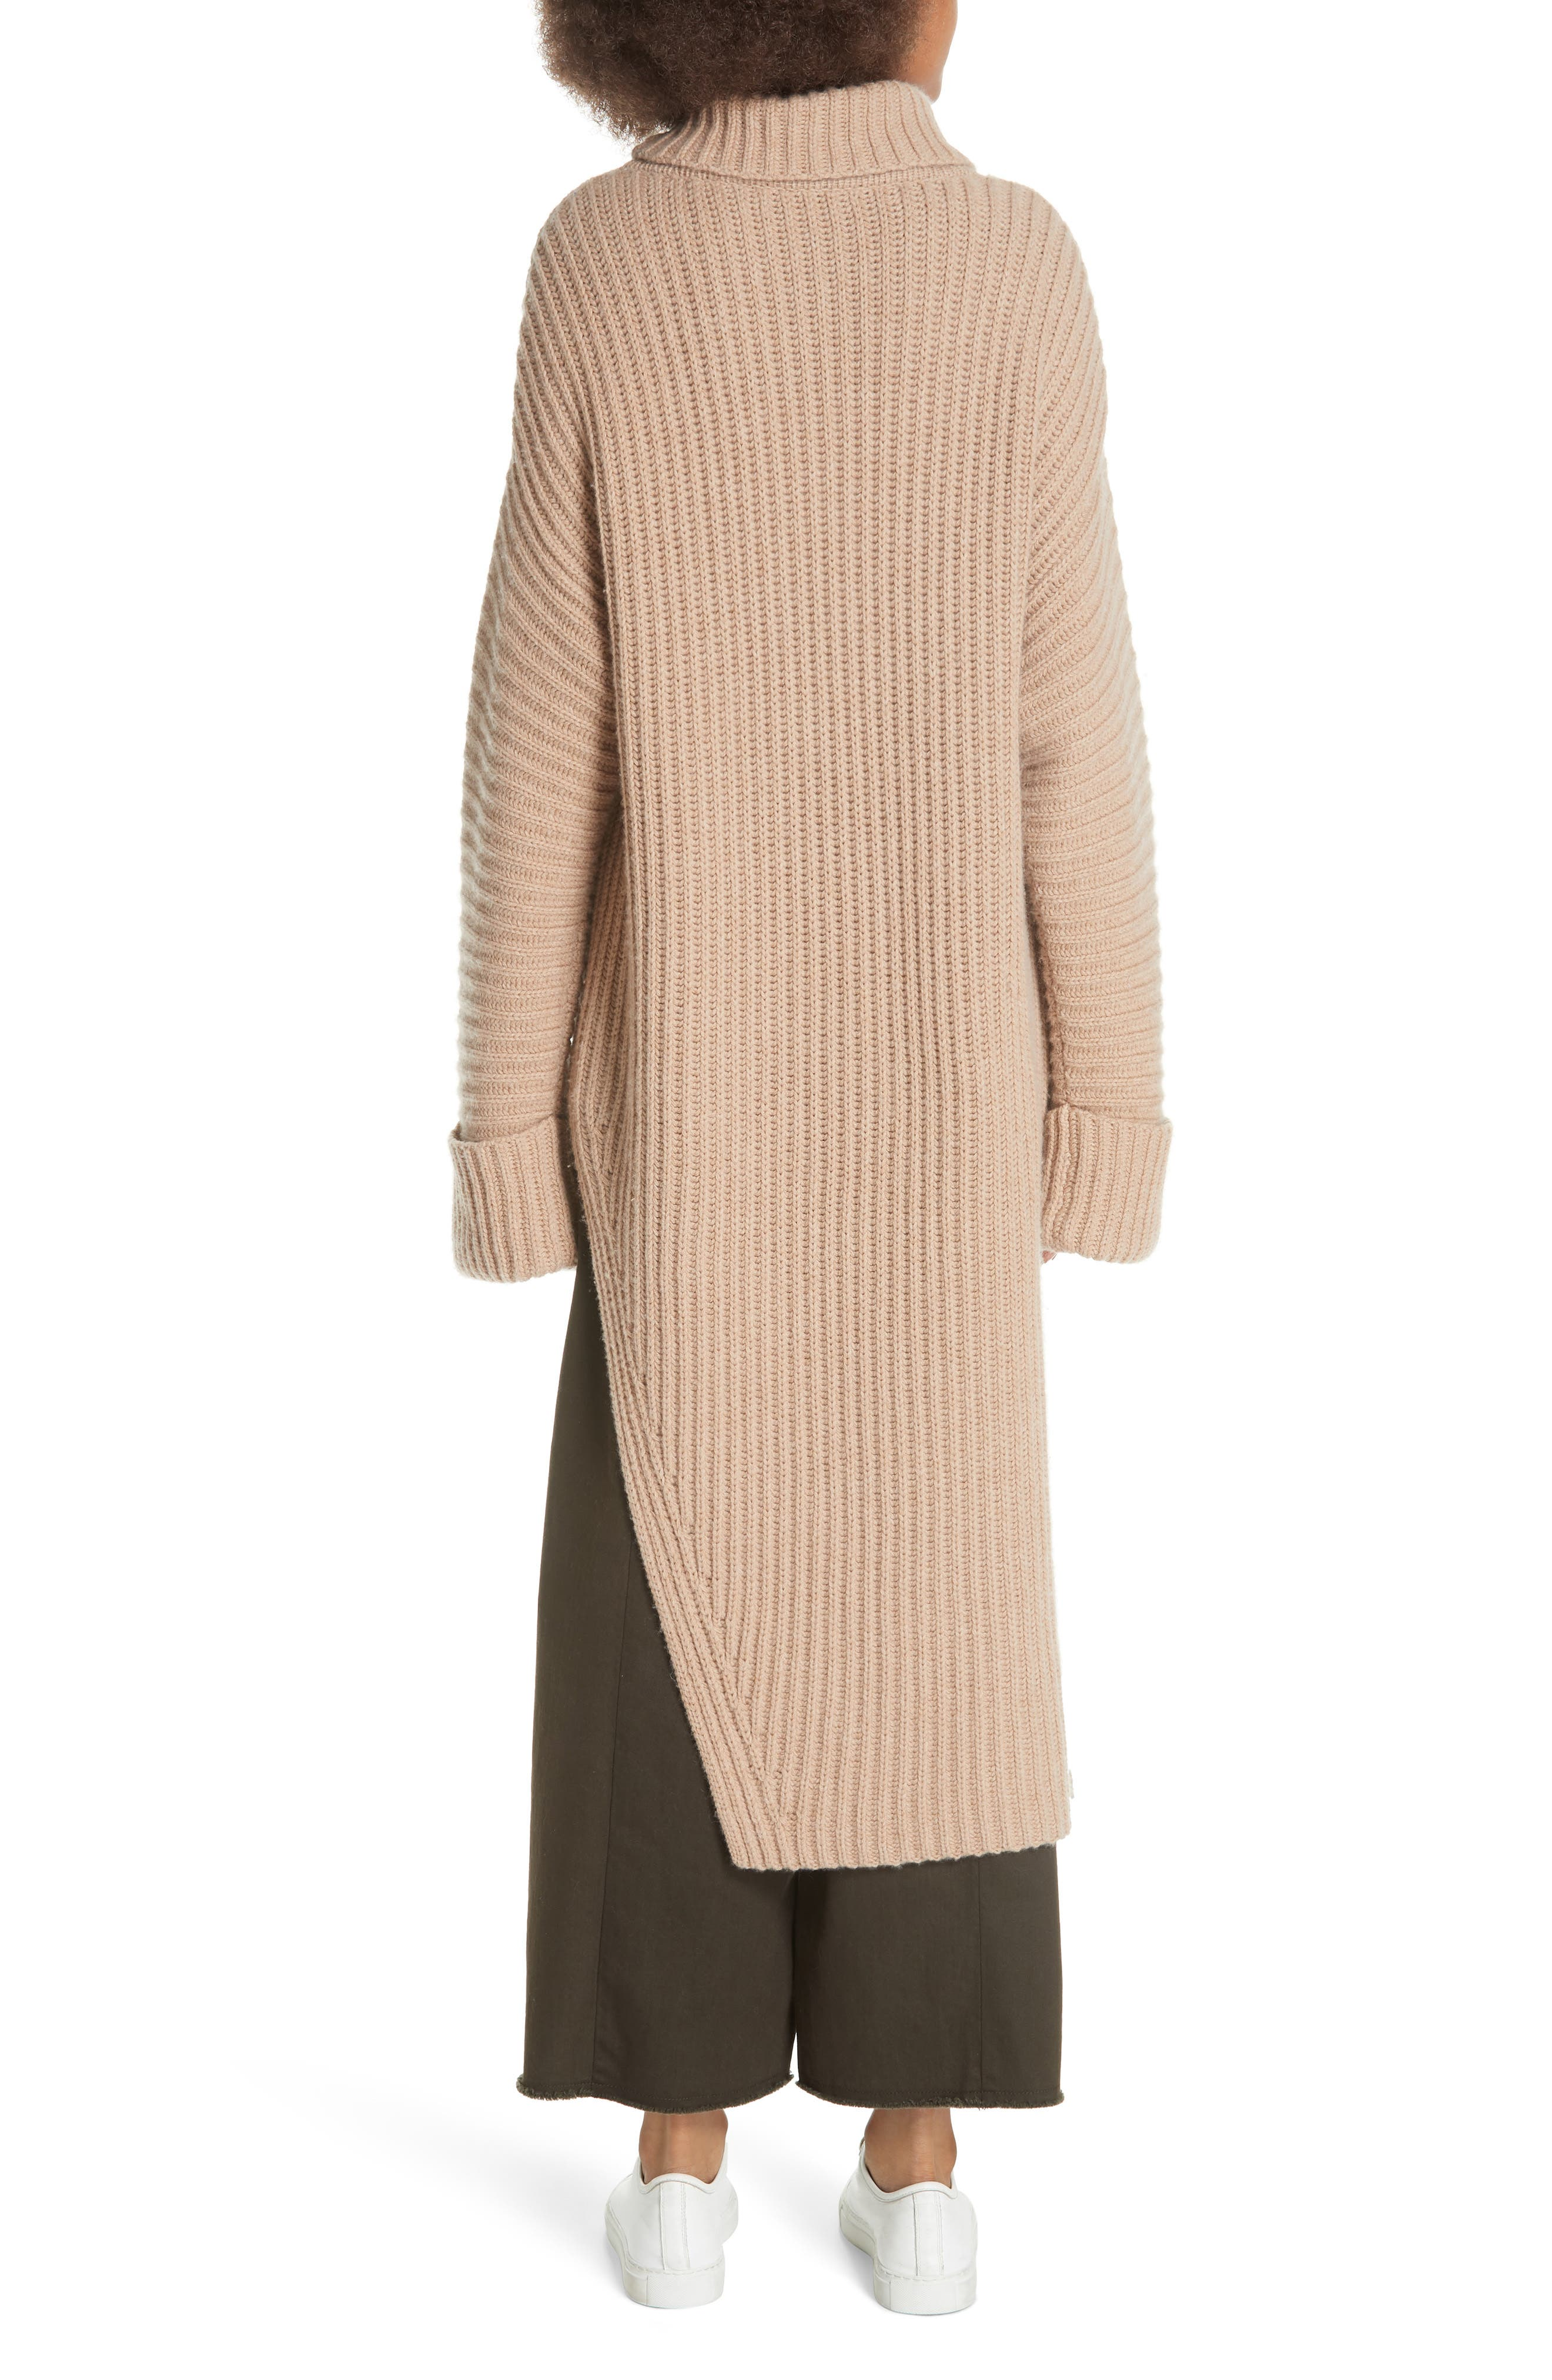 ELIZABETH AND JAMES,                             Mae Wool & Cashmere Sweater,                             Alternate thumbnail 2, color,                             250